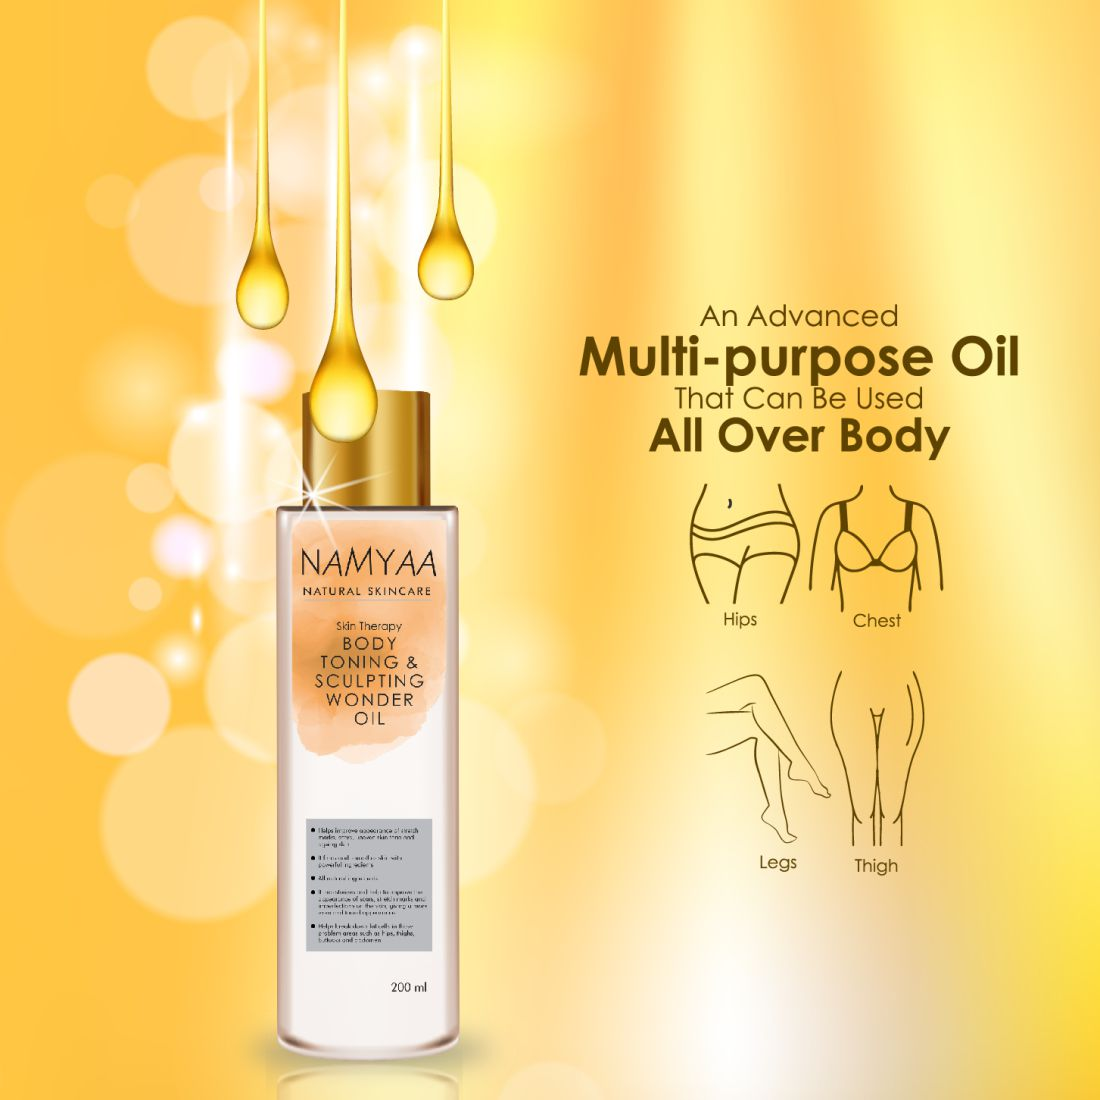 Body Toning and Sculpting Oil